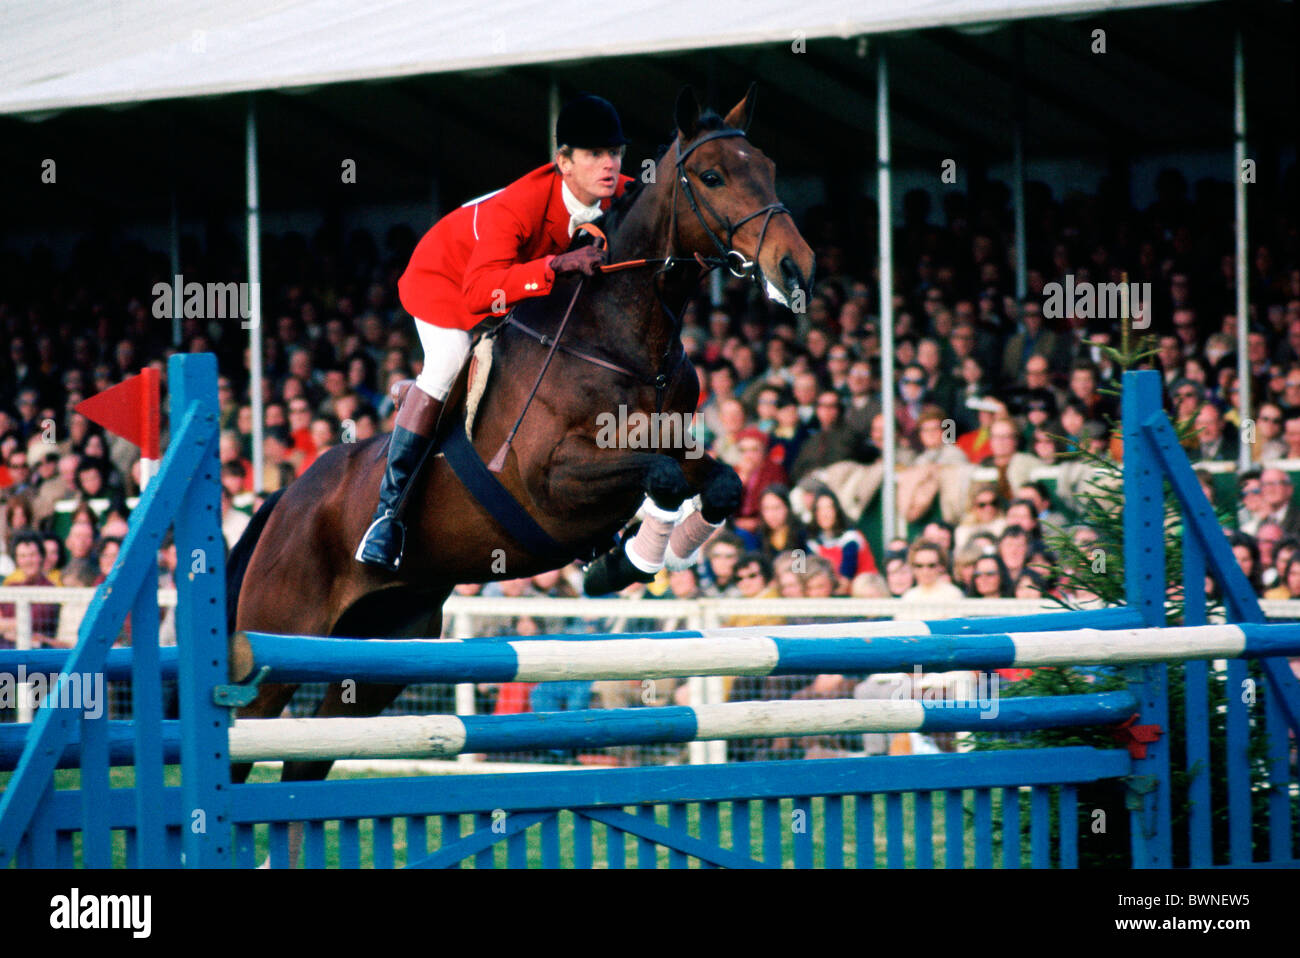 Richard Meade competing in the Badminton Horse Trials - Stock Image